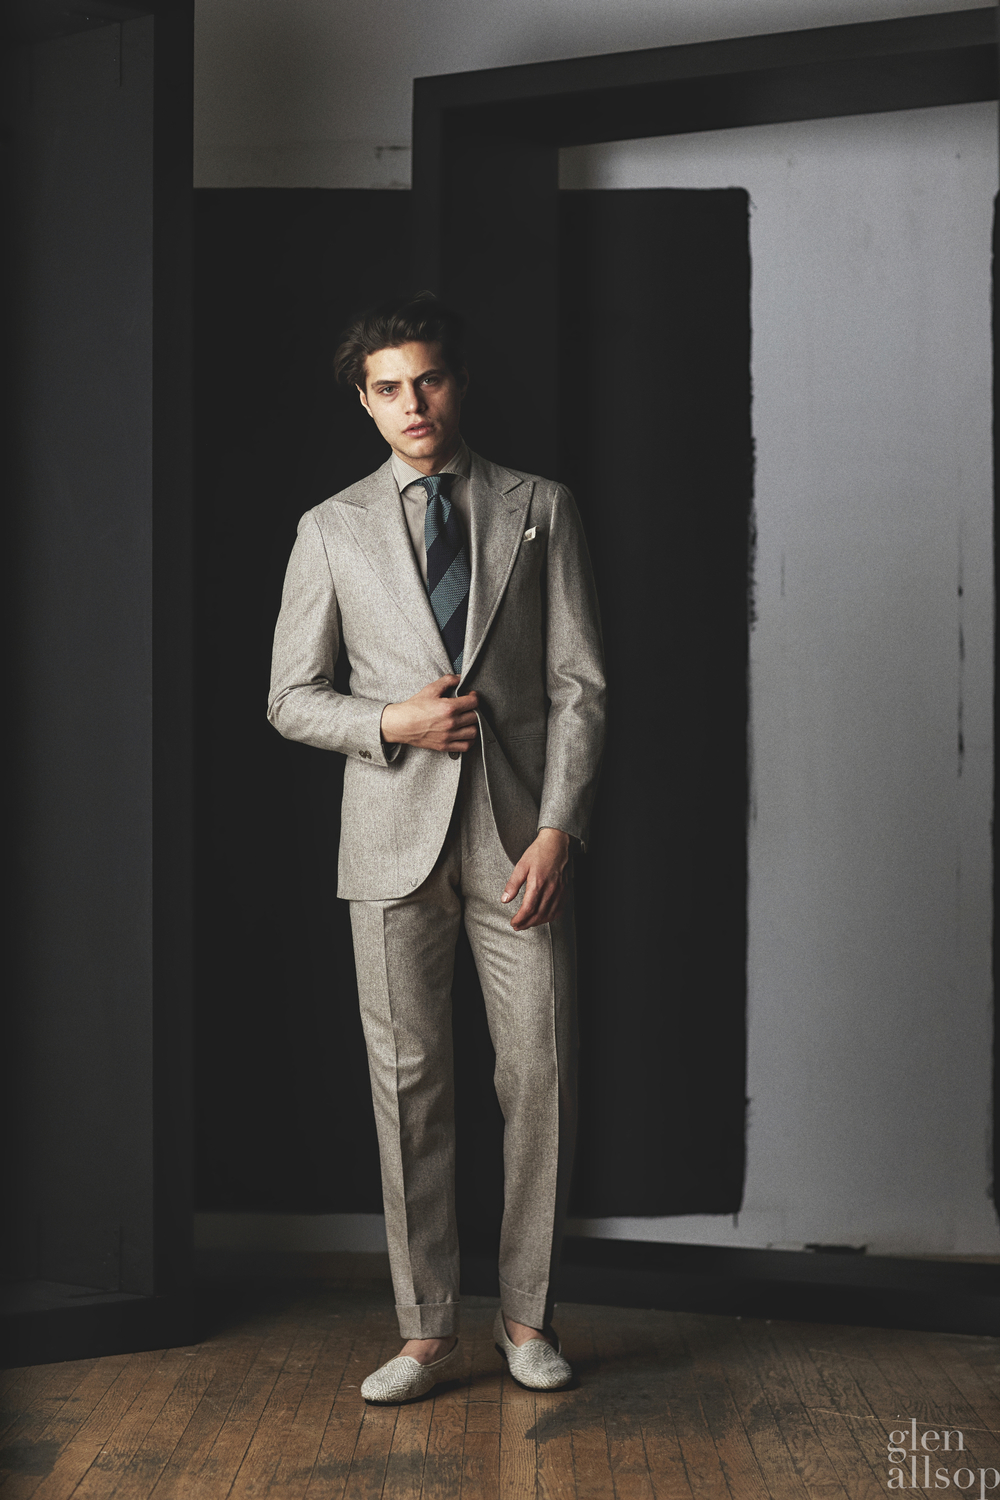 lookbook 5-eidos-nyfwm-menswear-suit-antonino russo-model